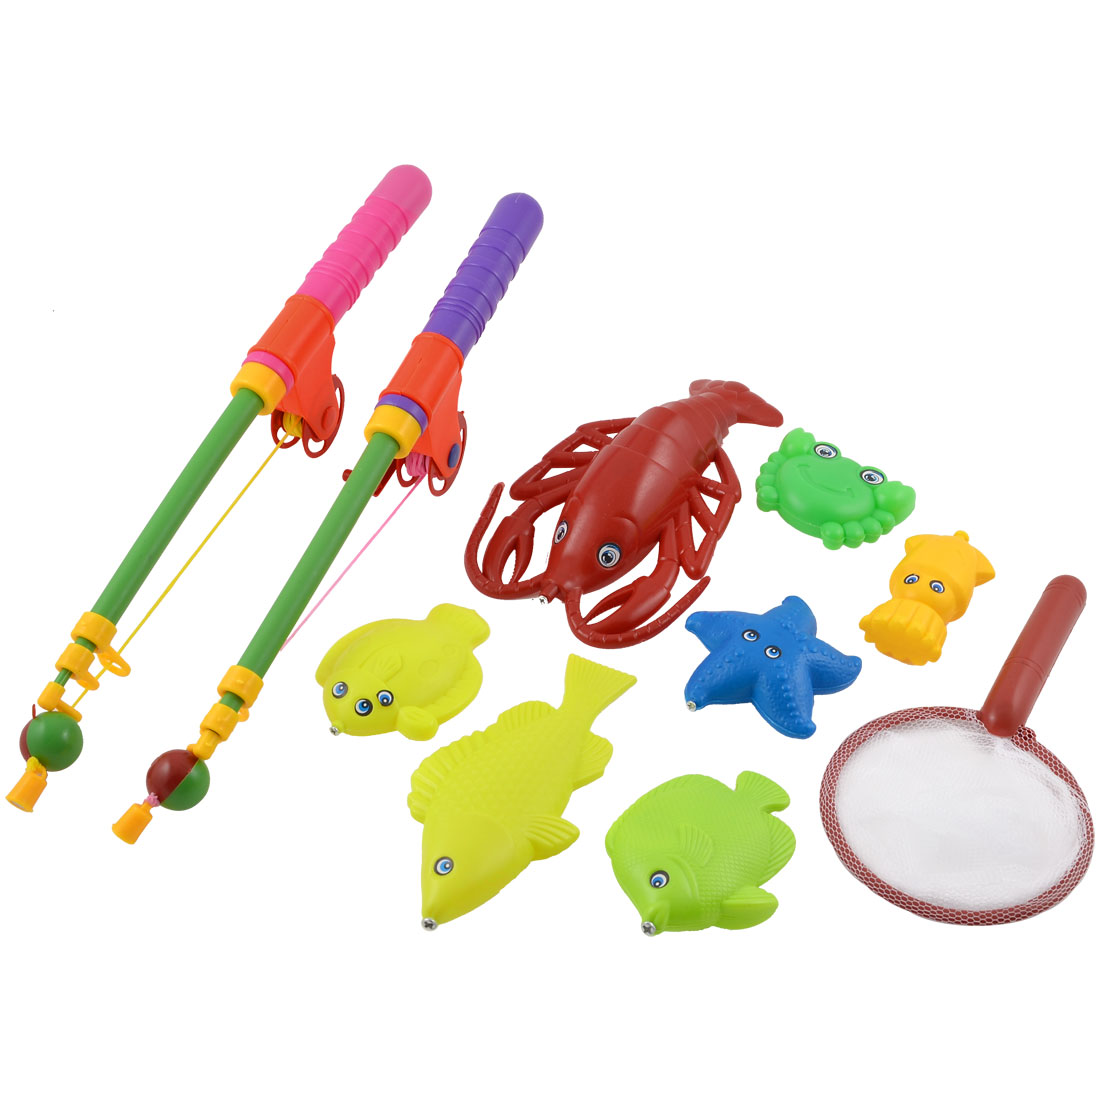 Children Colorful Plastic Magnetic Fish Starfish Crab Fishing Game Toy Set 10 in 1